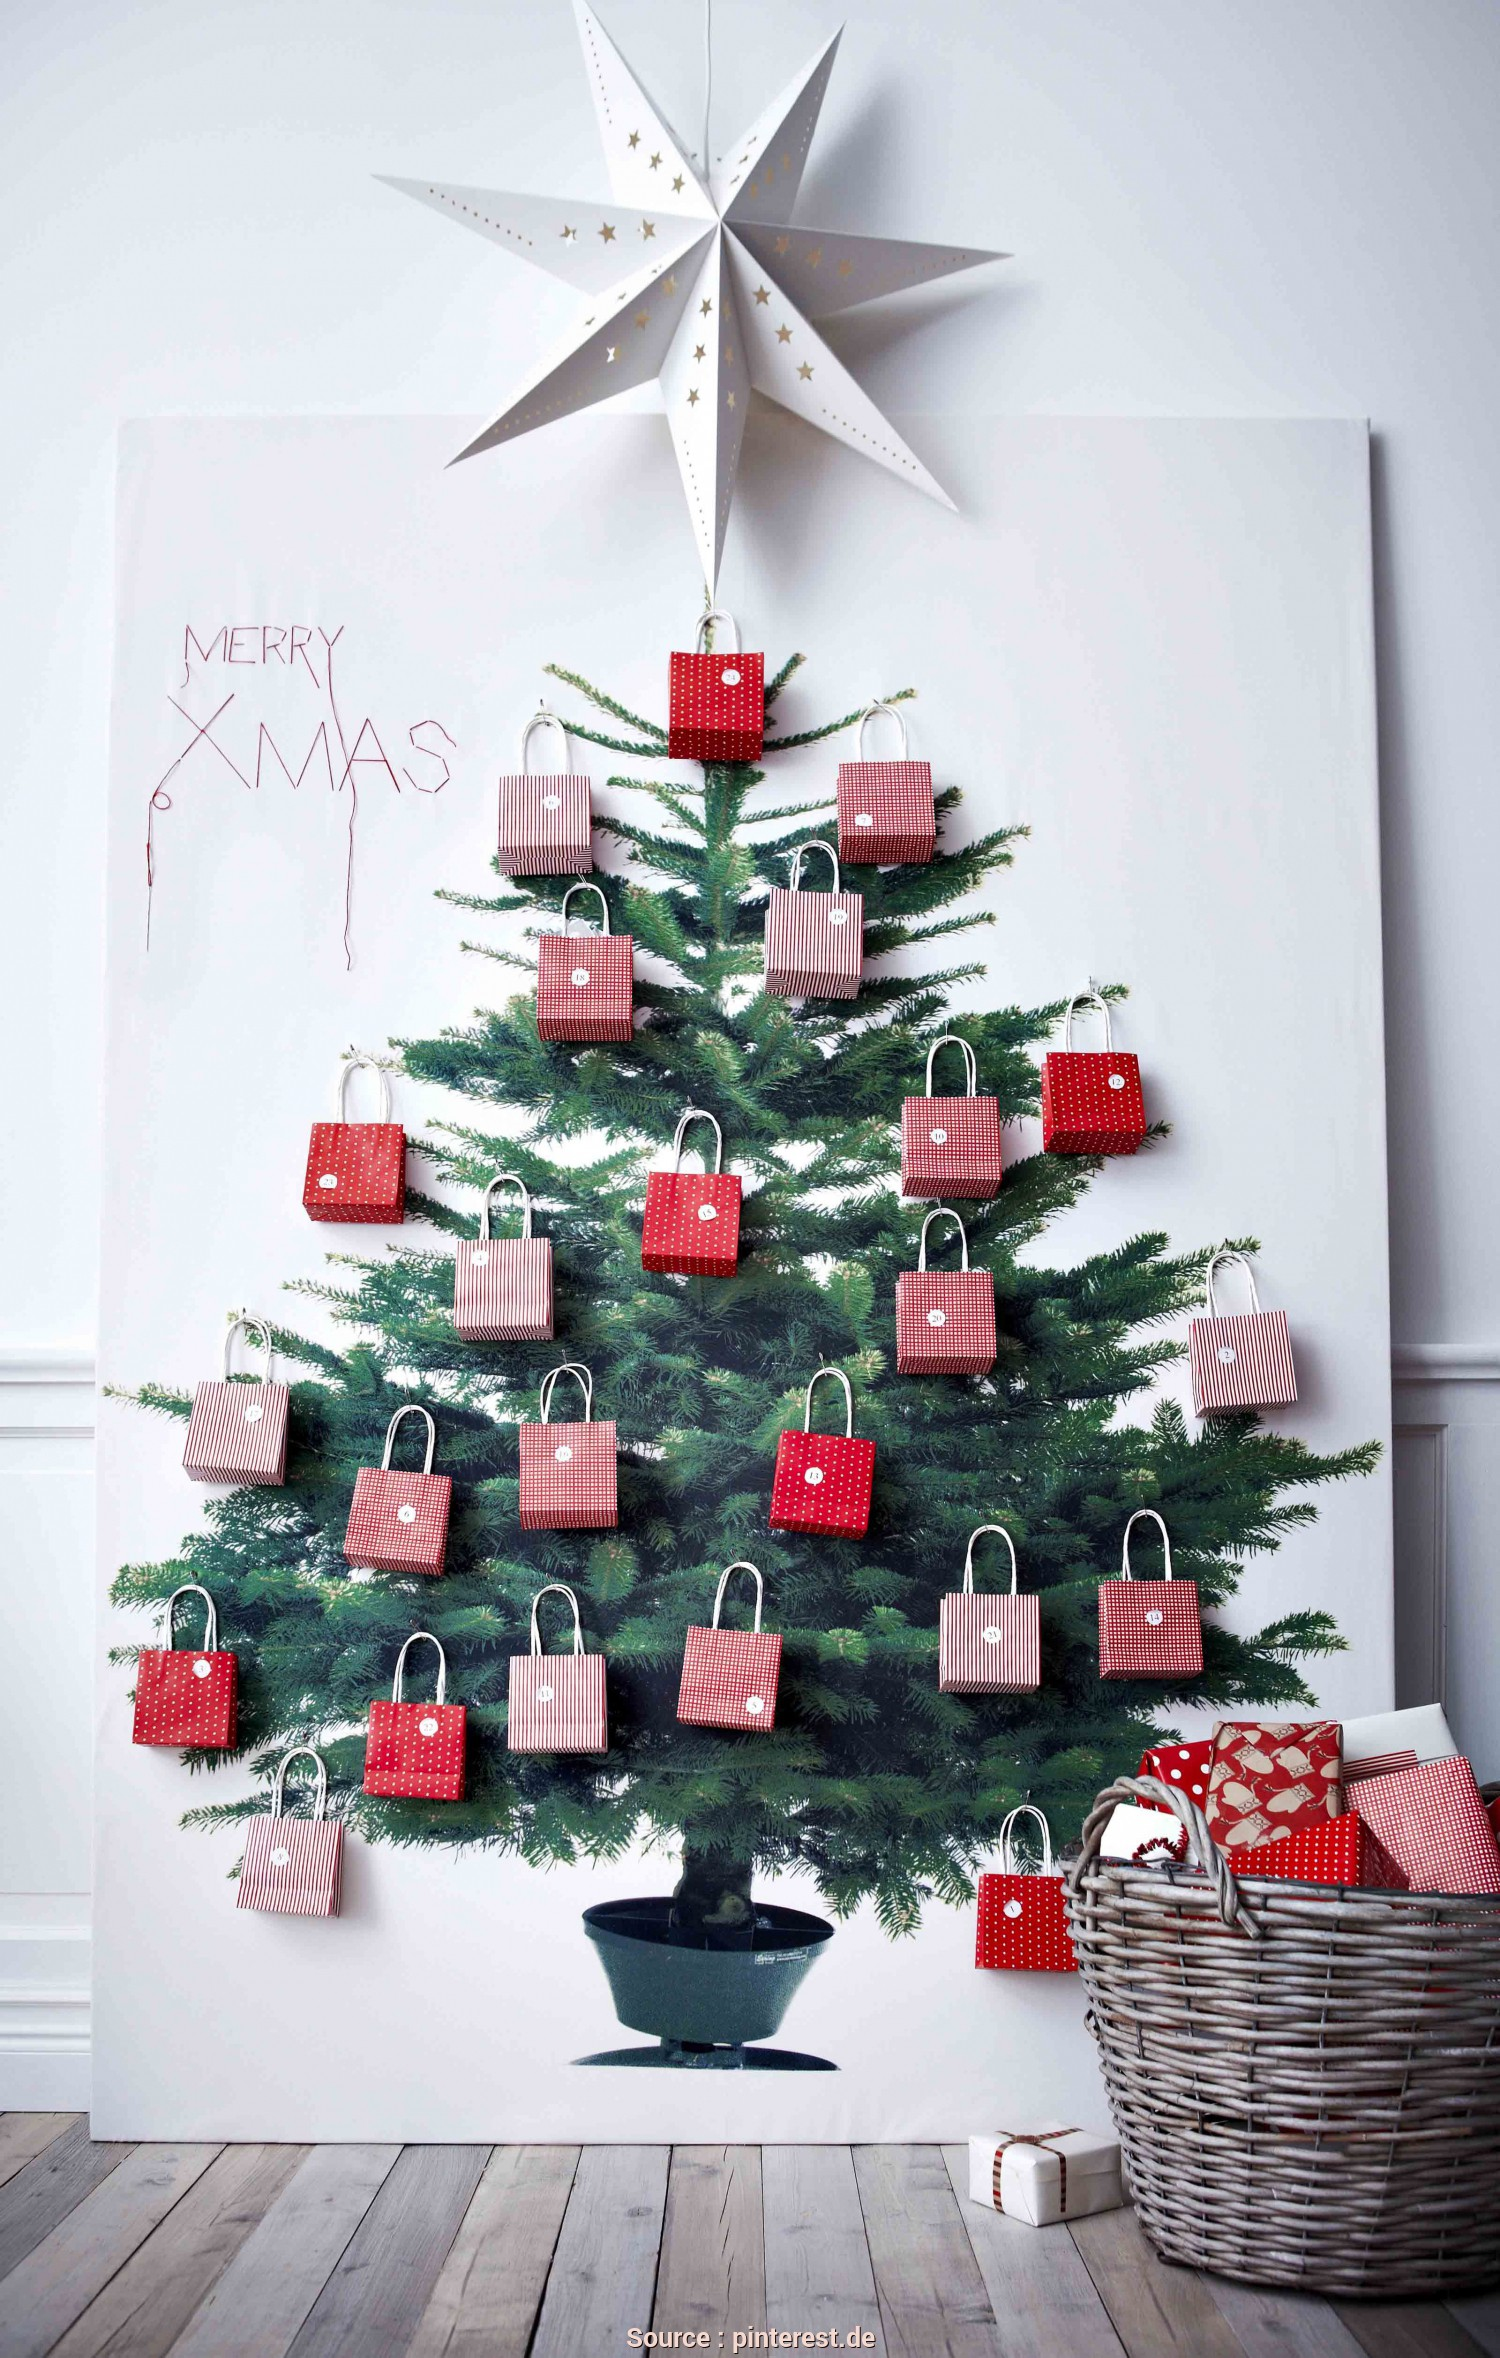 Ikea Stoffe Weihnachtsbaum, Freddo Christmas Tree...Good, To Display A Giving Tree, Our Ward...And Could Easily Be, In, RS Closet